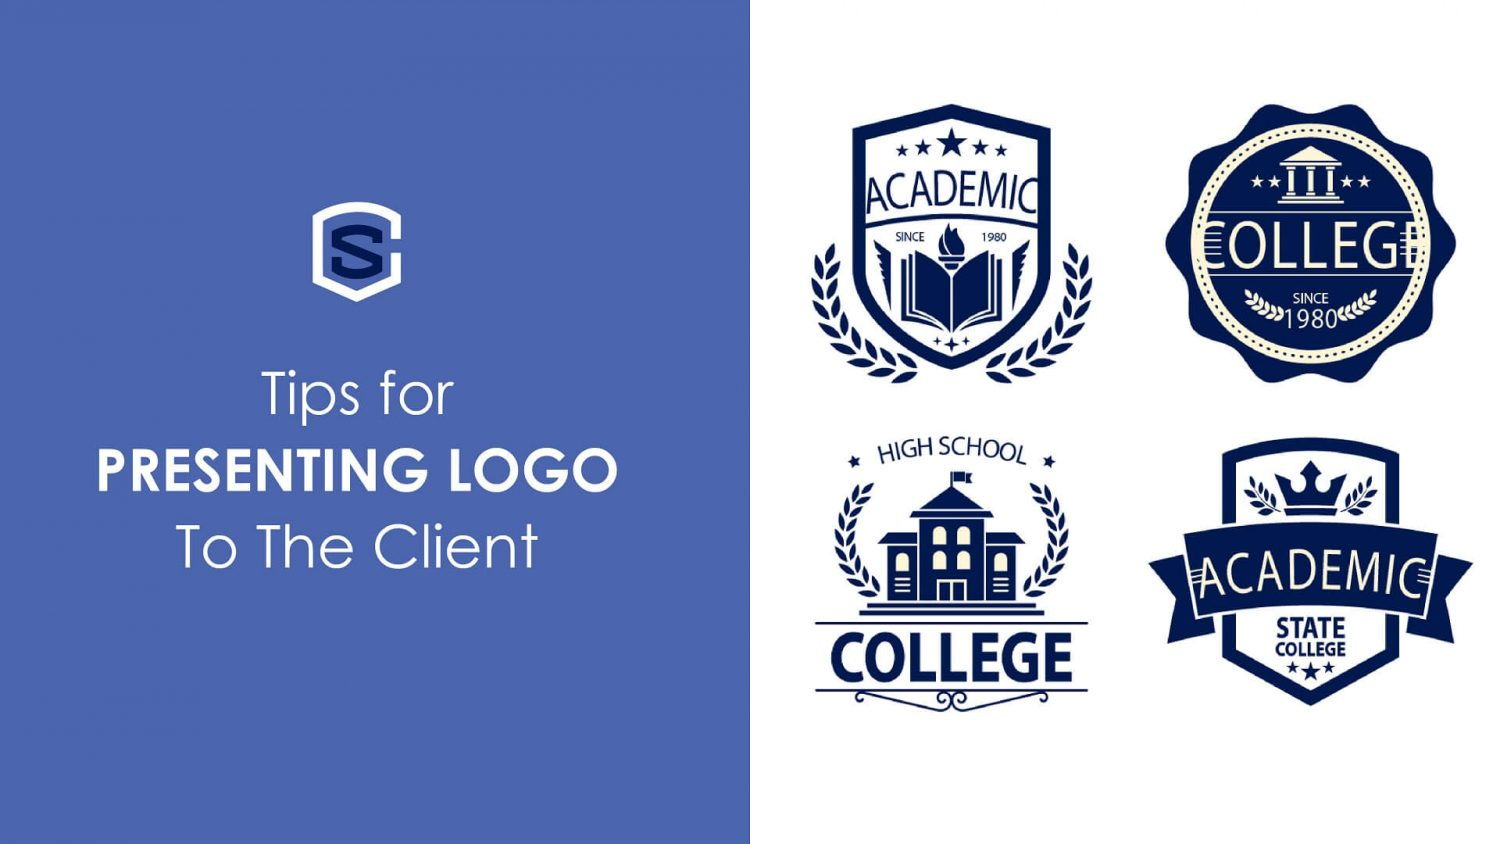 Tips for Presenting Logo to The Client